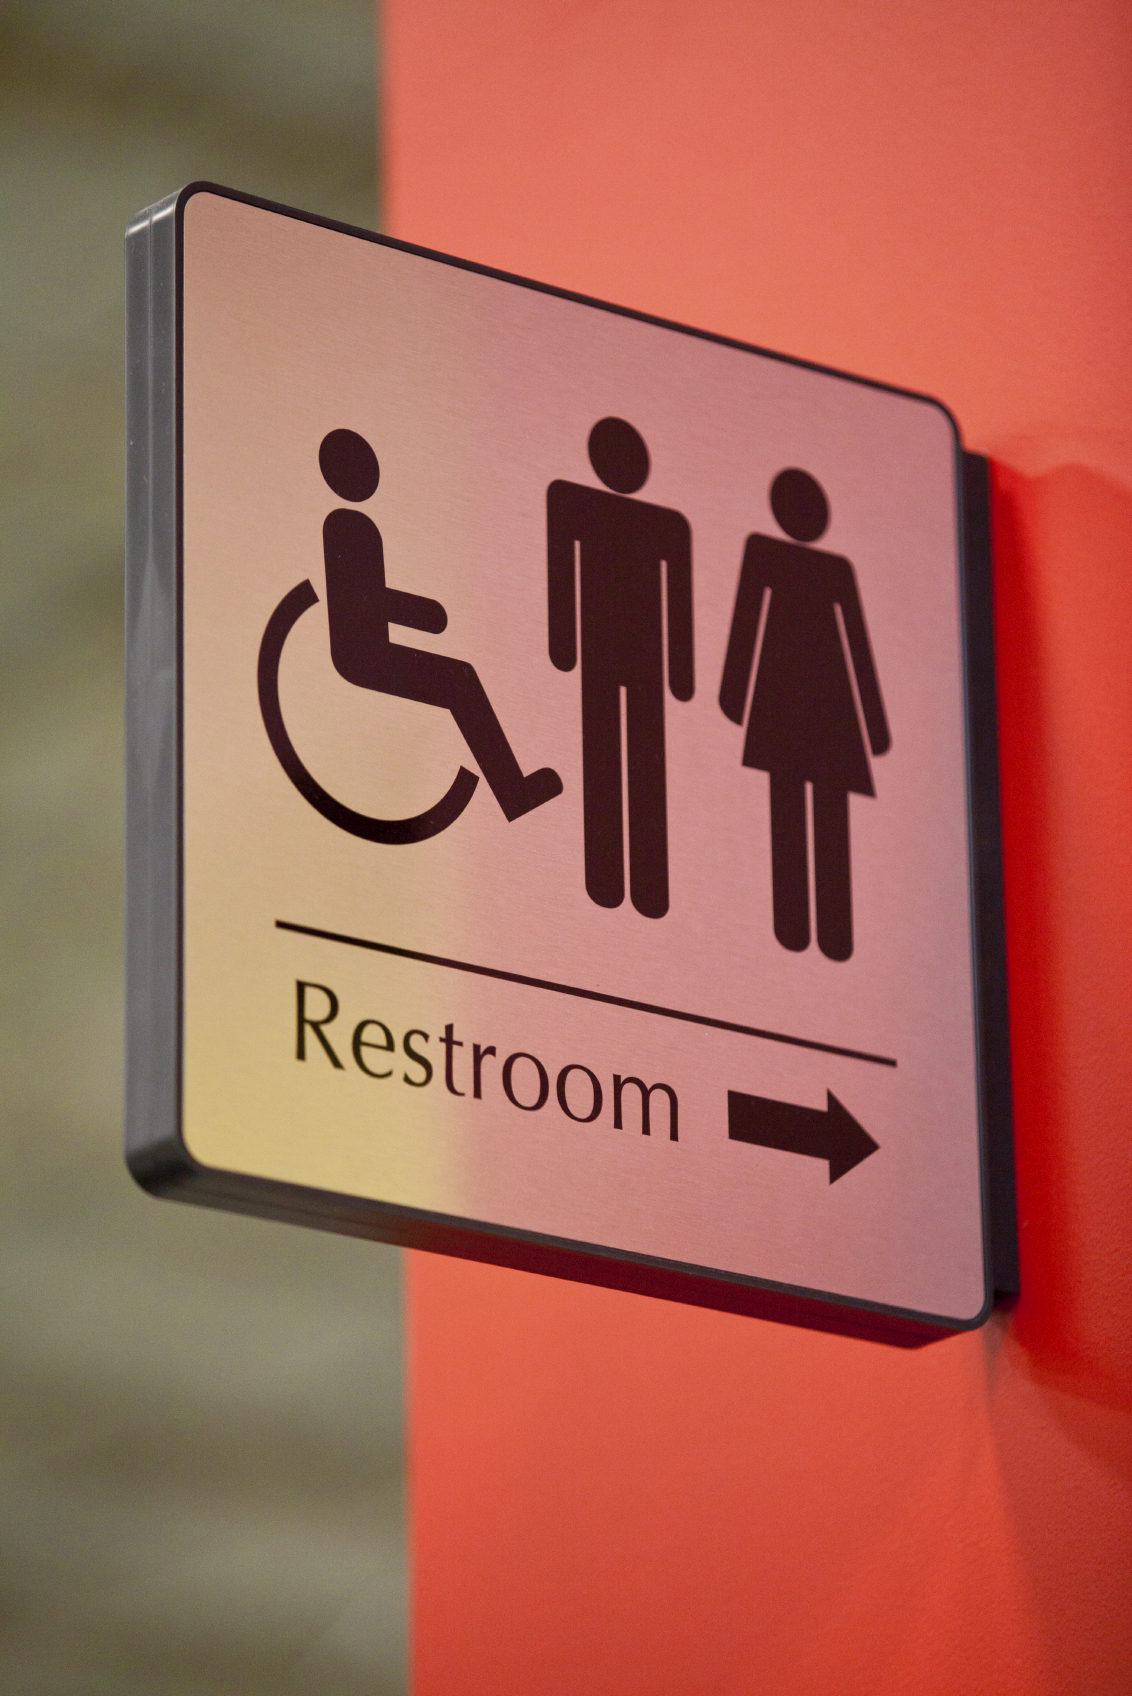 How risky is using a public bathroom during the pandemic?